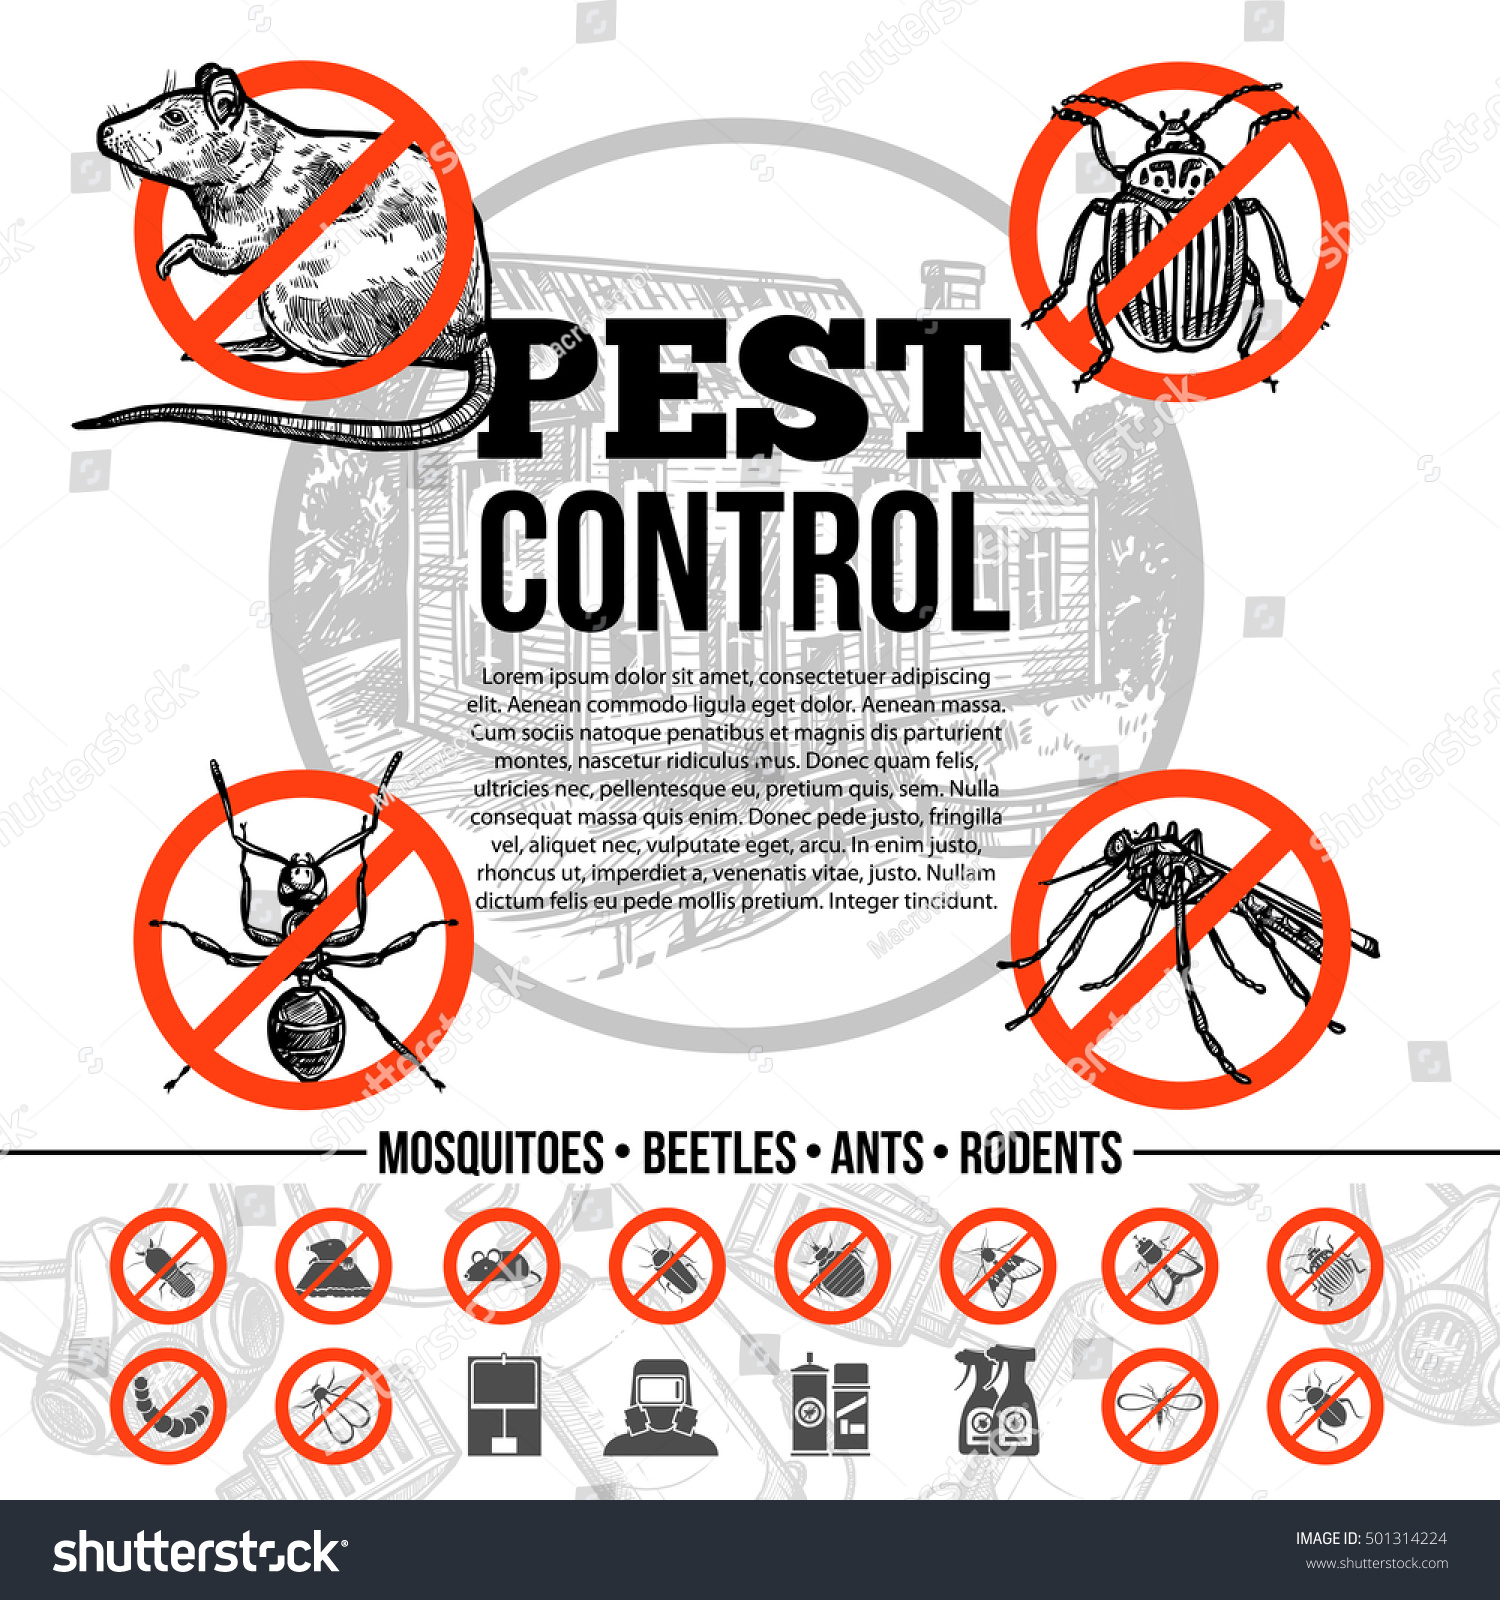 Ra T Vel Pest Control Infographics Icons Insects Rat Stock Vector Royalty